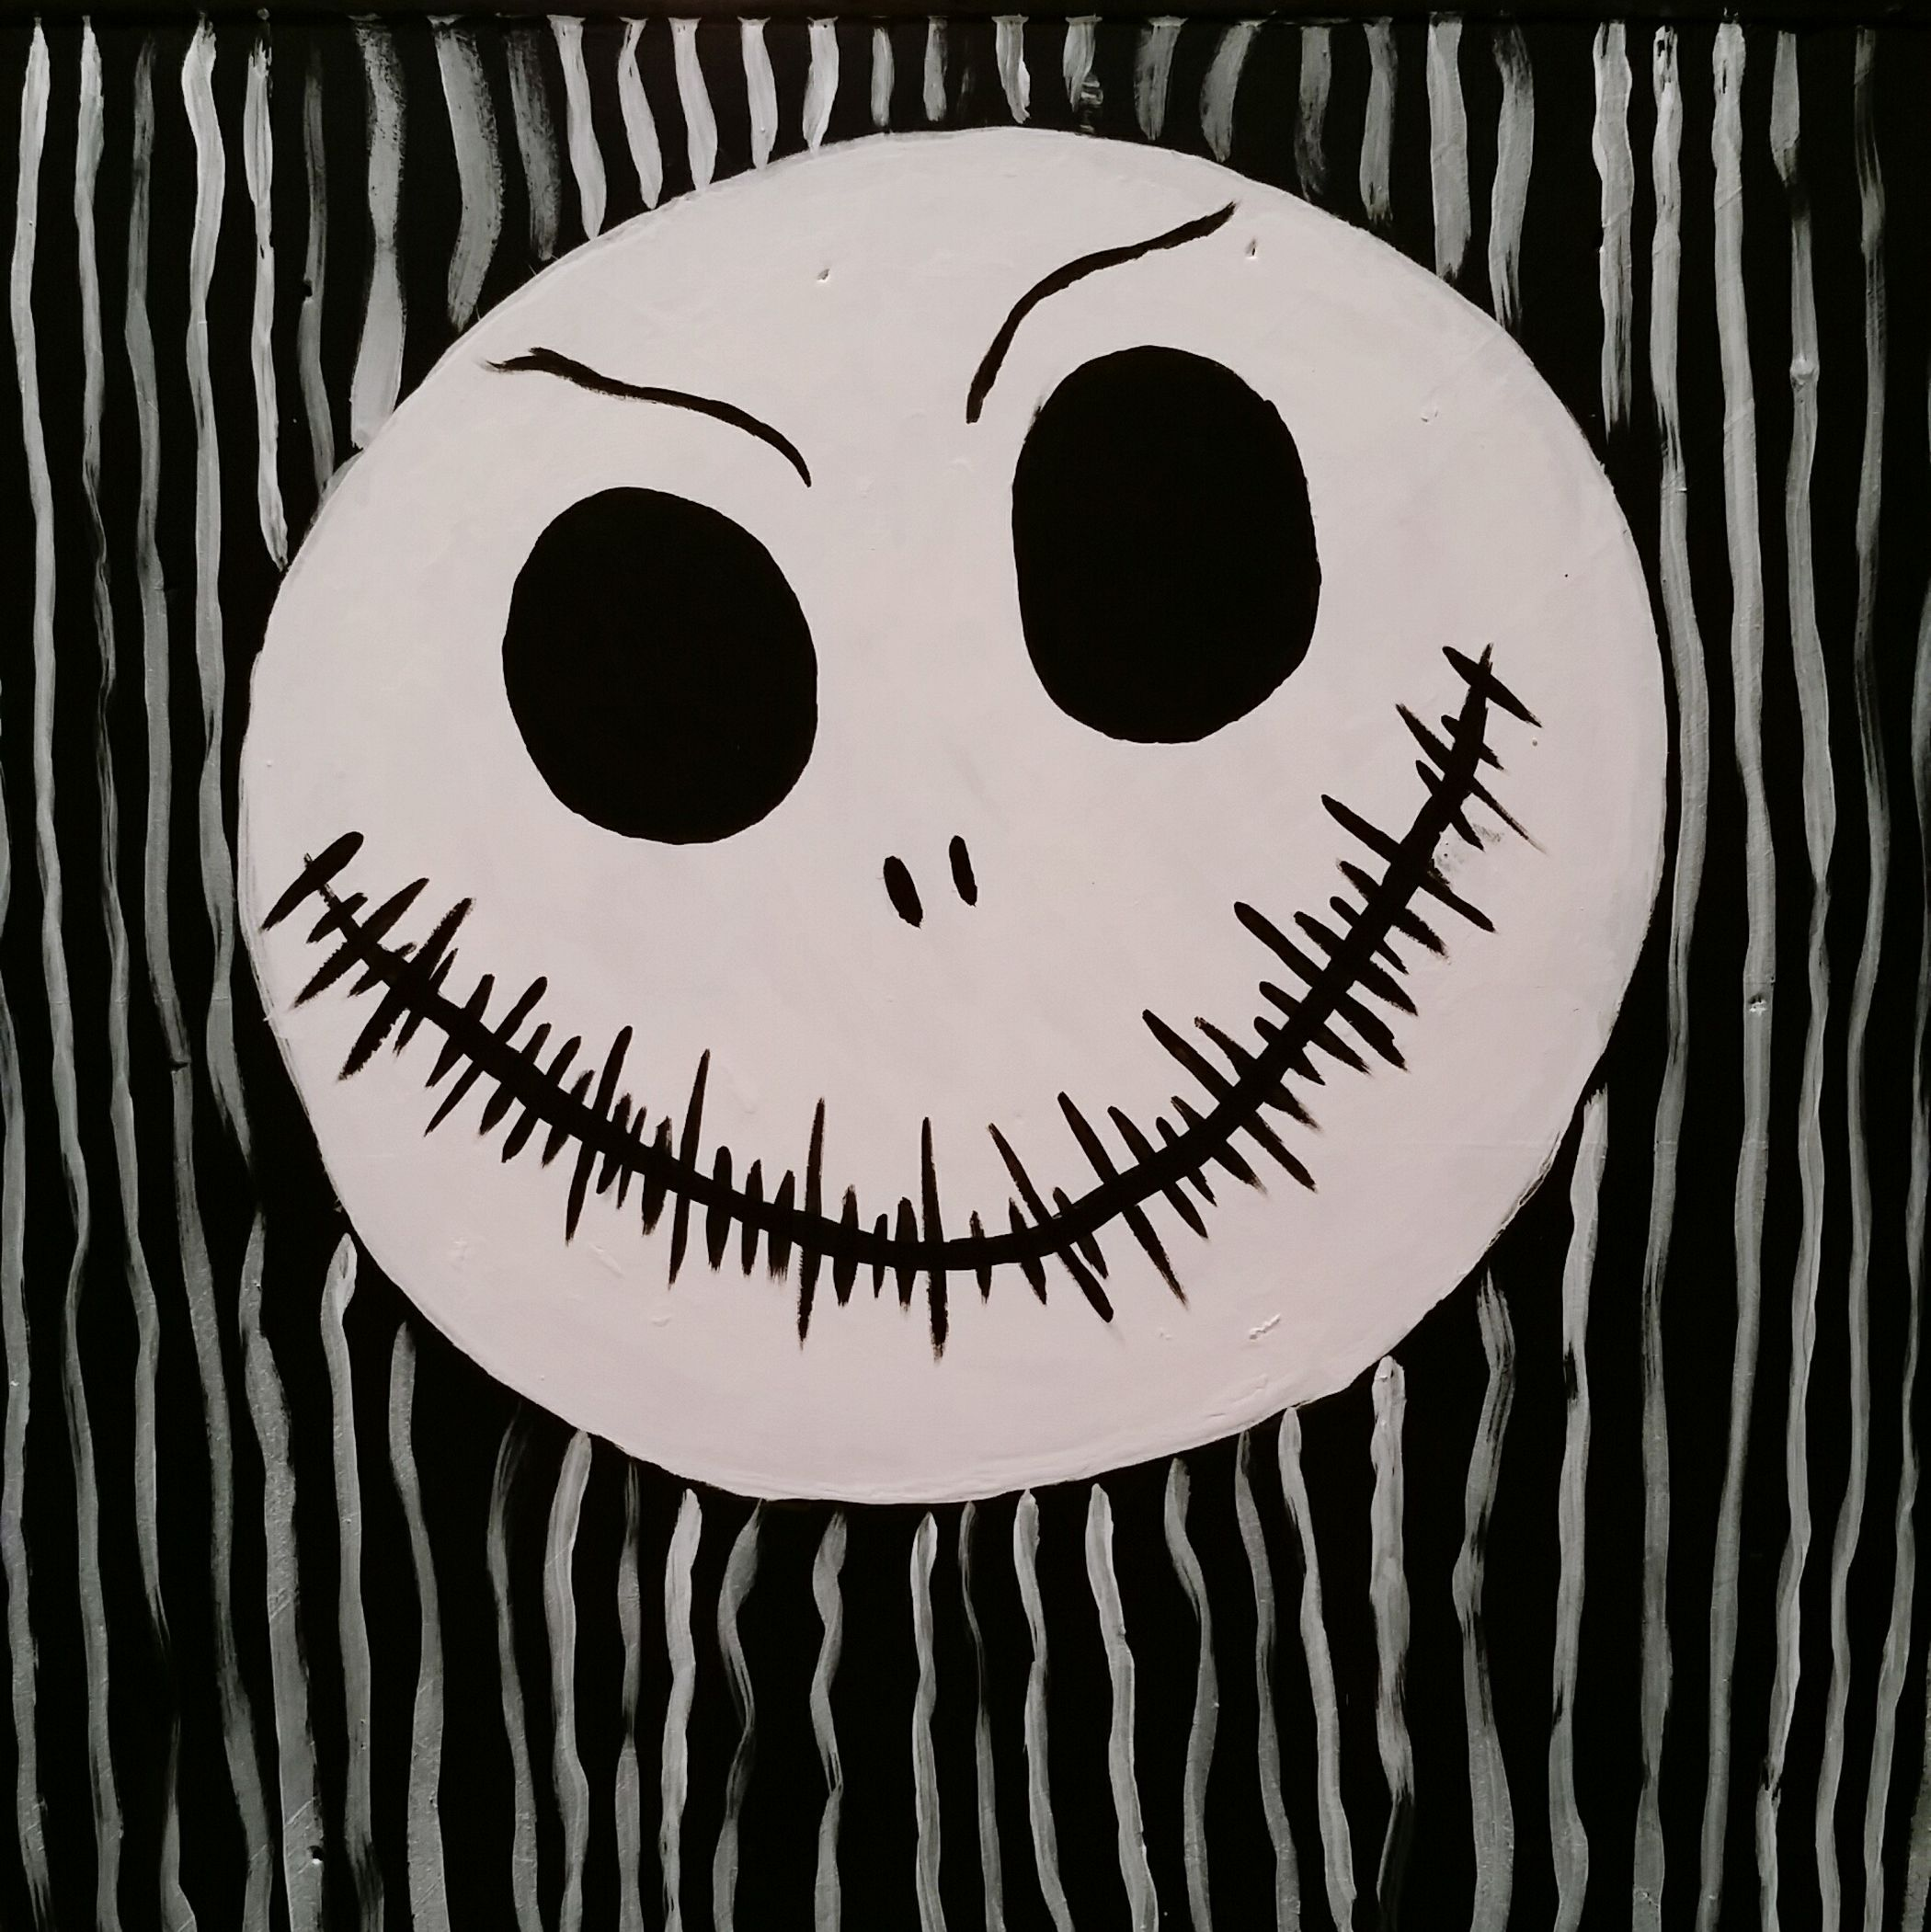 My Daughters Painting Daughters Art Jack Skellington The Nightmare Before Christmas Imagination Through A Childs Eyes Arts And Crafts Freehand Painting Black And White Tim Burton Style Childs Play